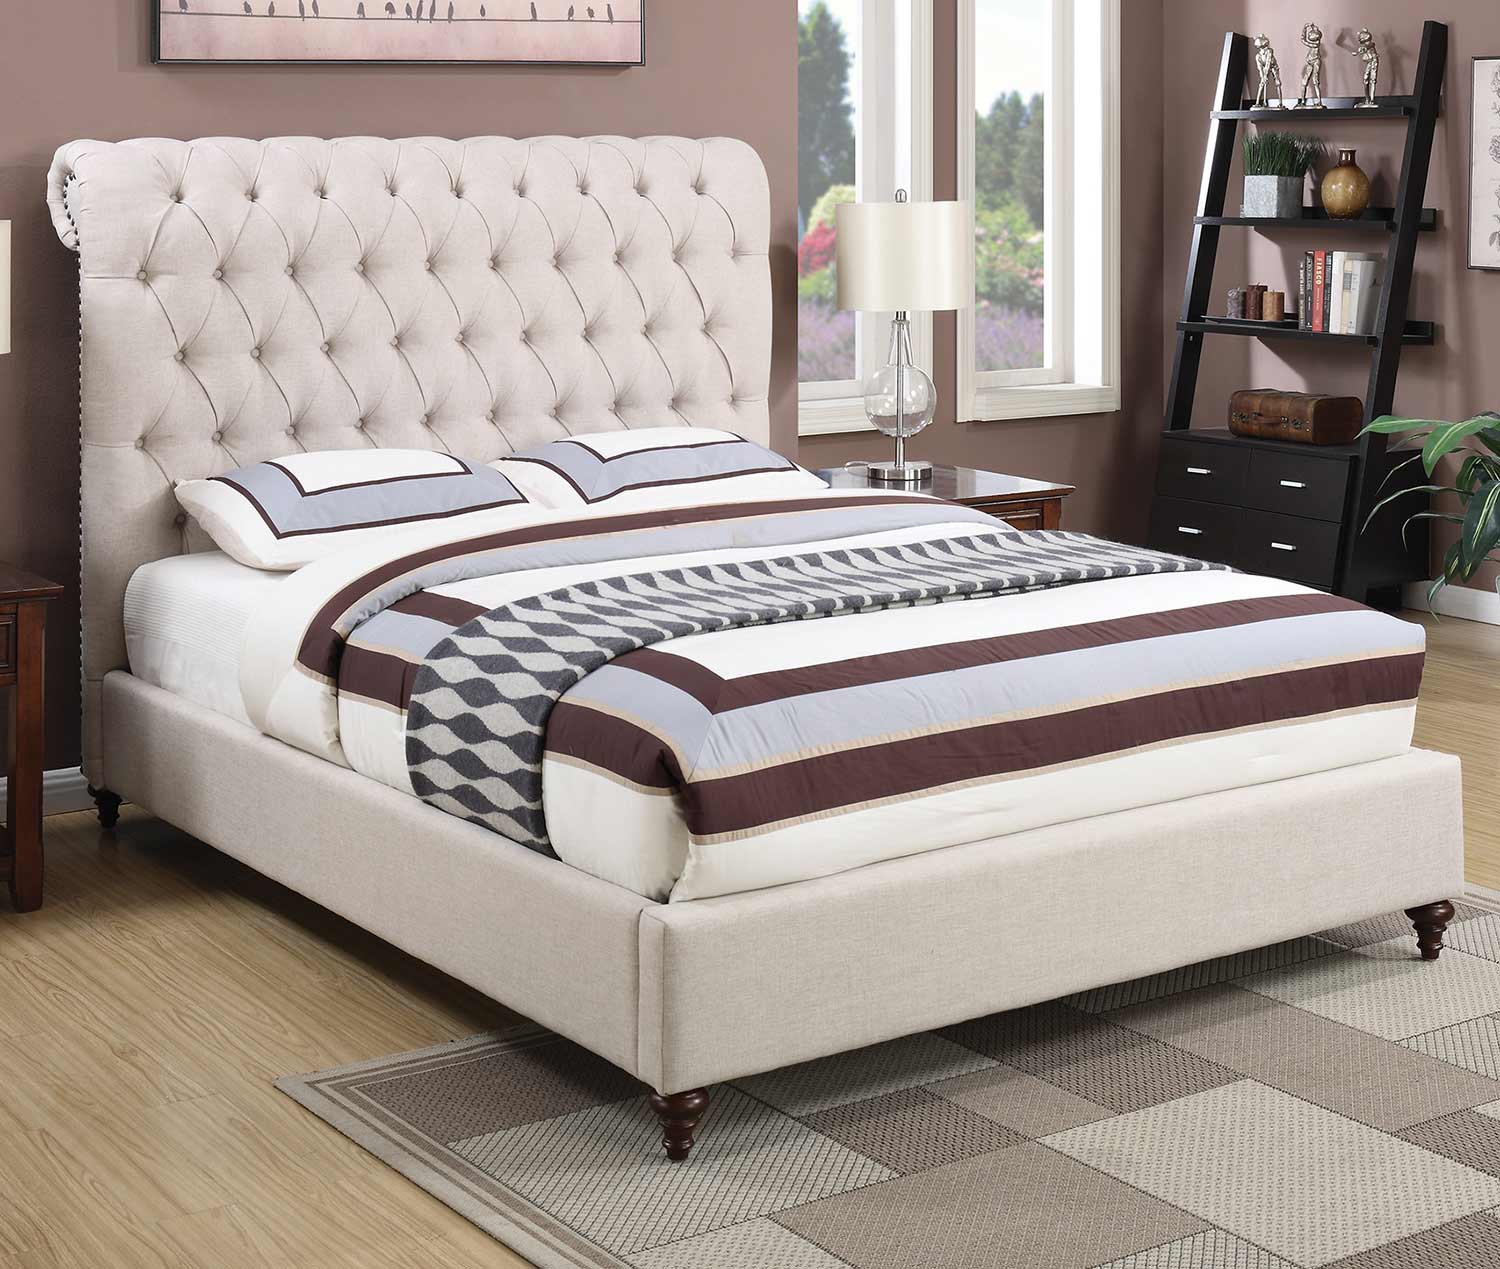 Coaster Devon Bed - Beige